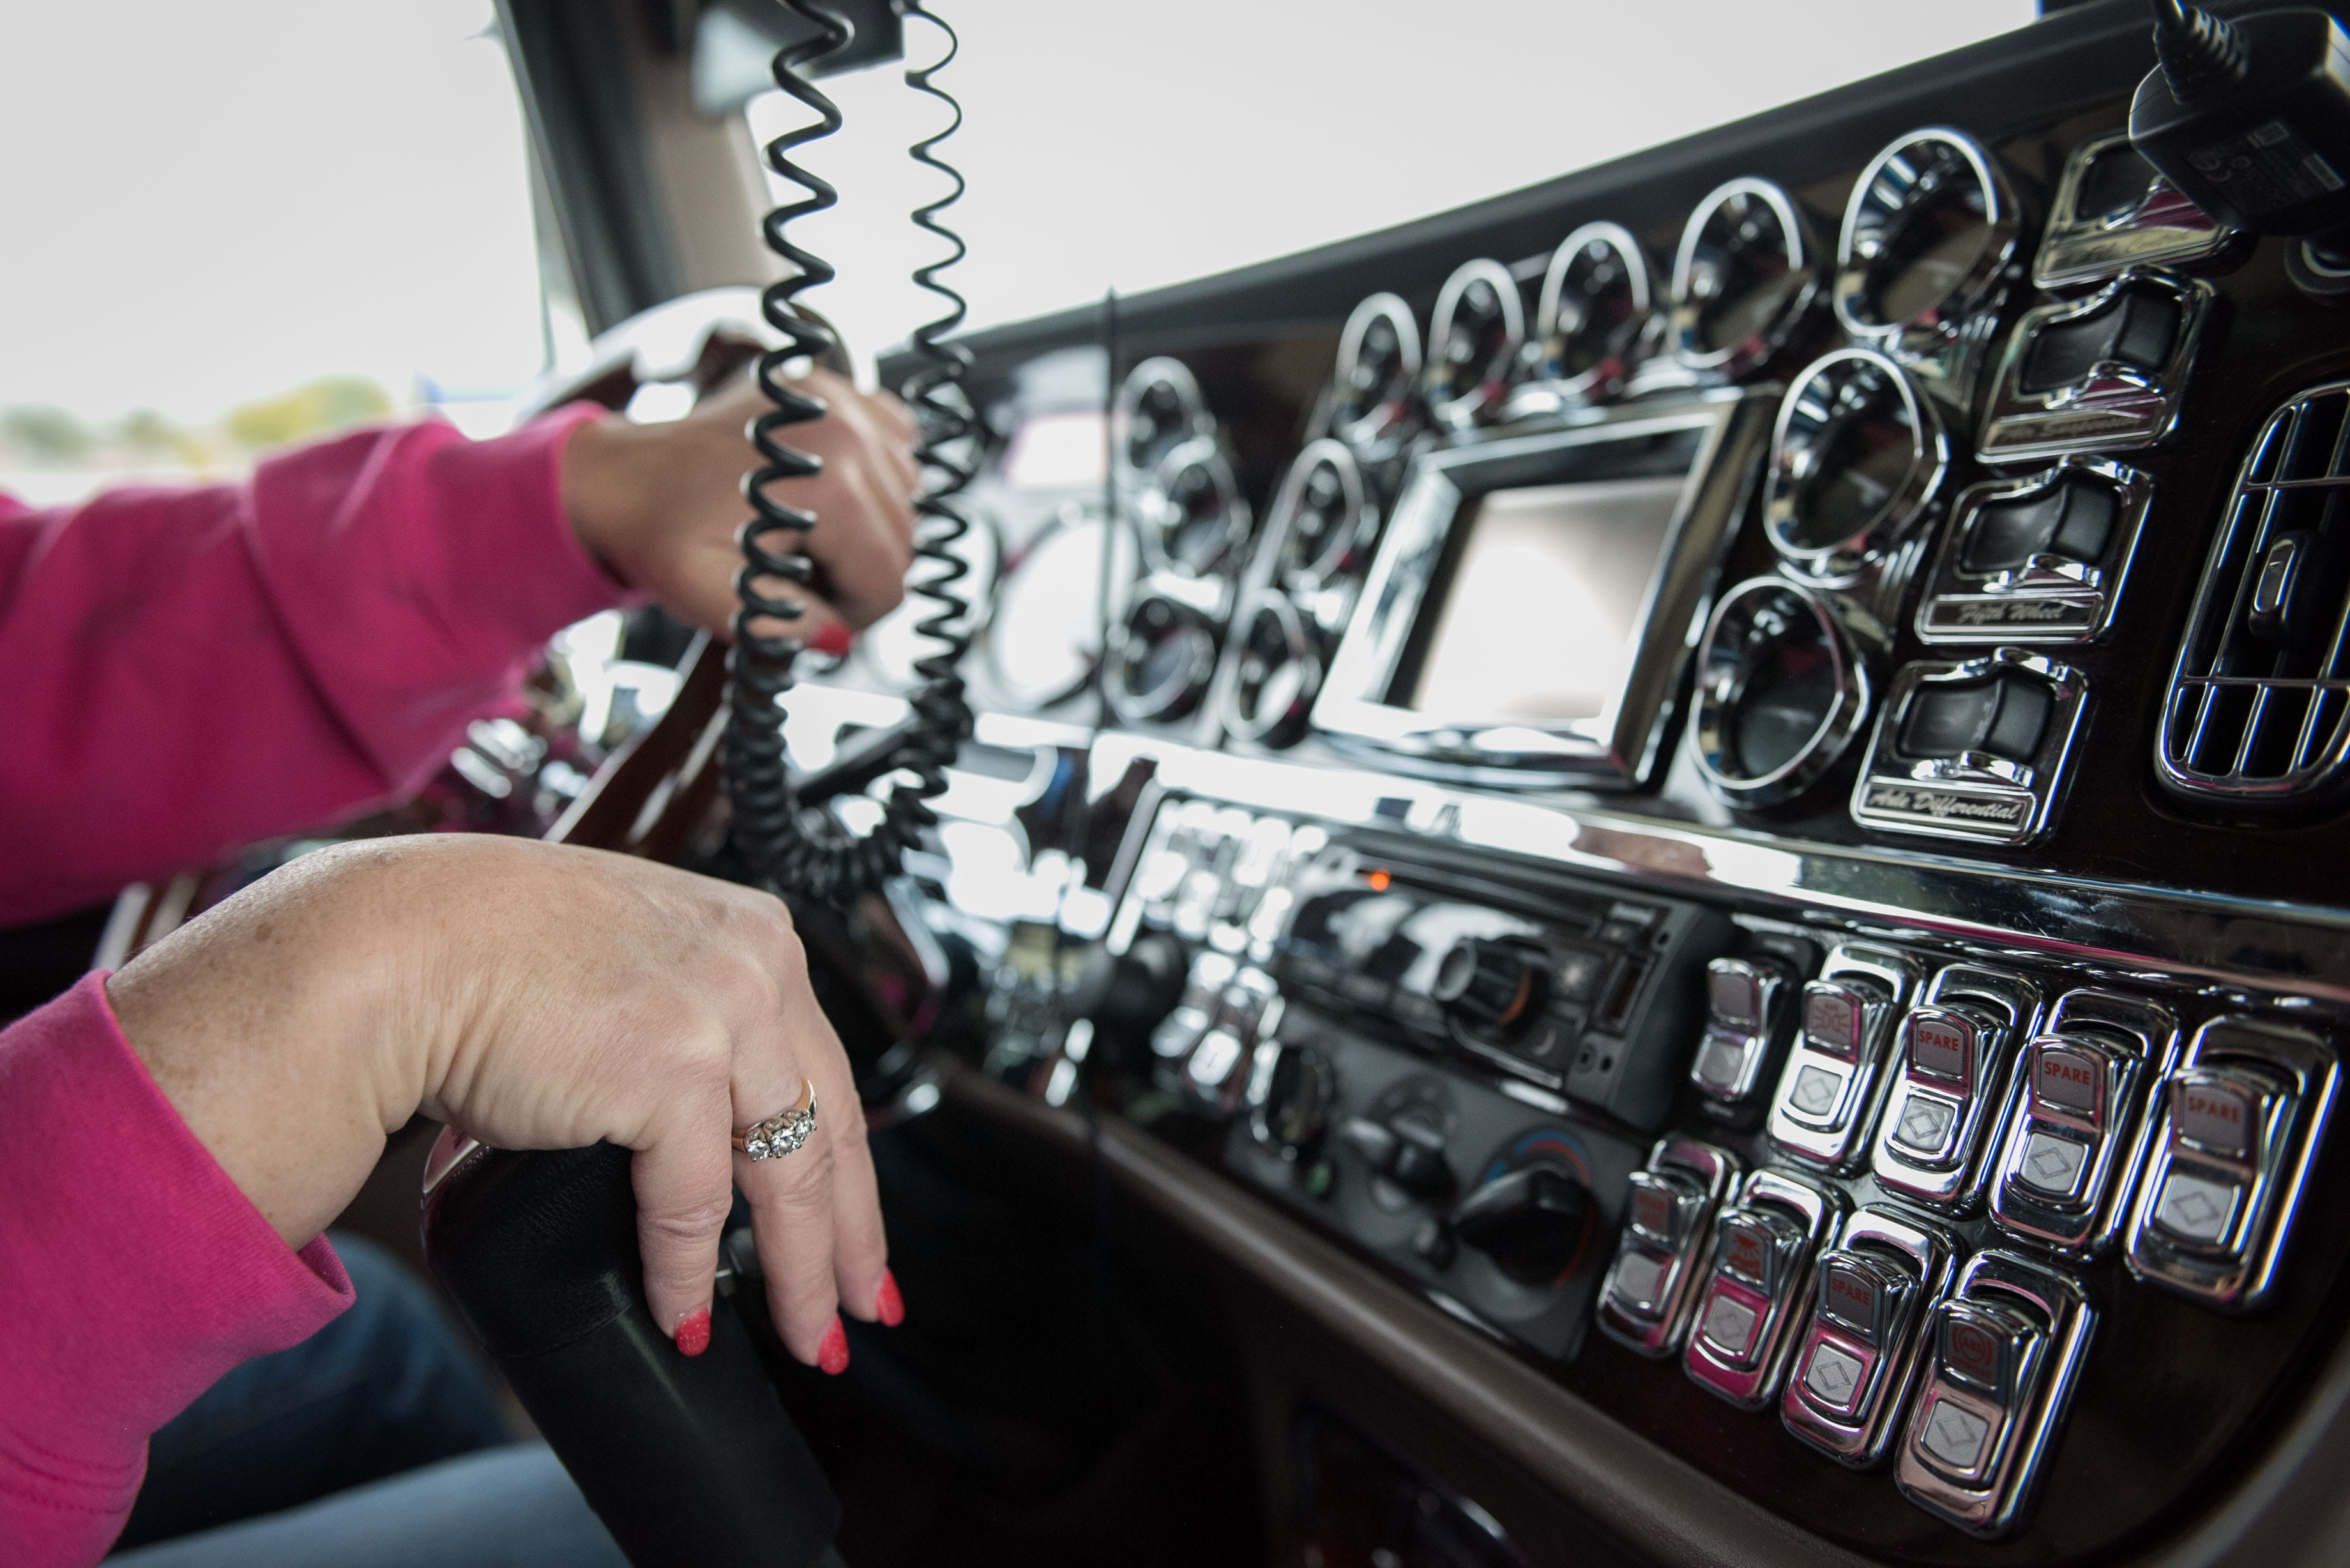 Women are changing the trucking industry